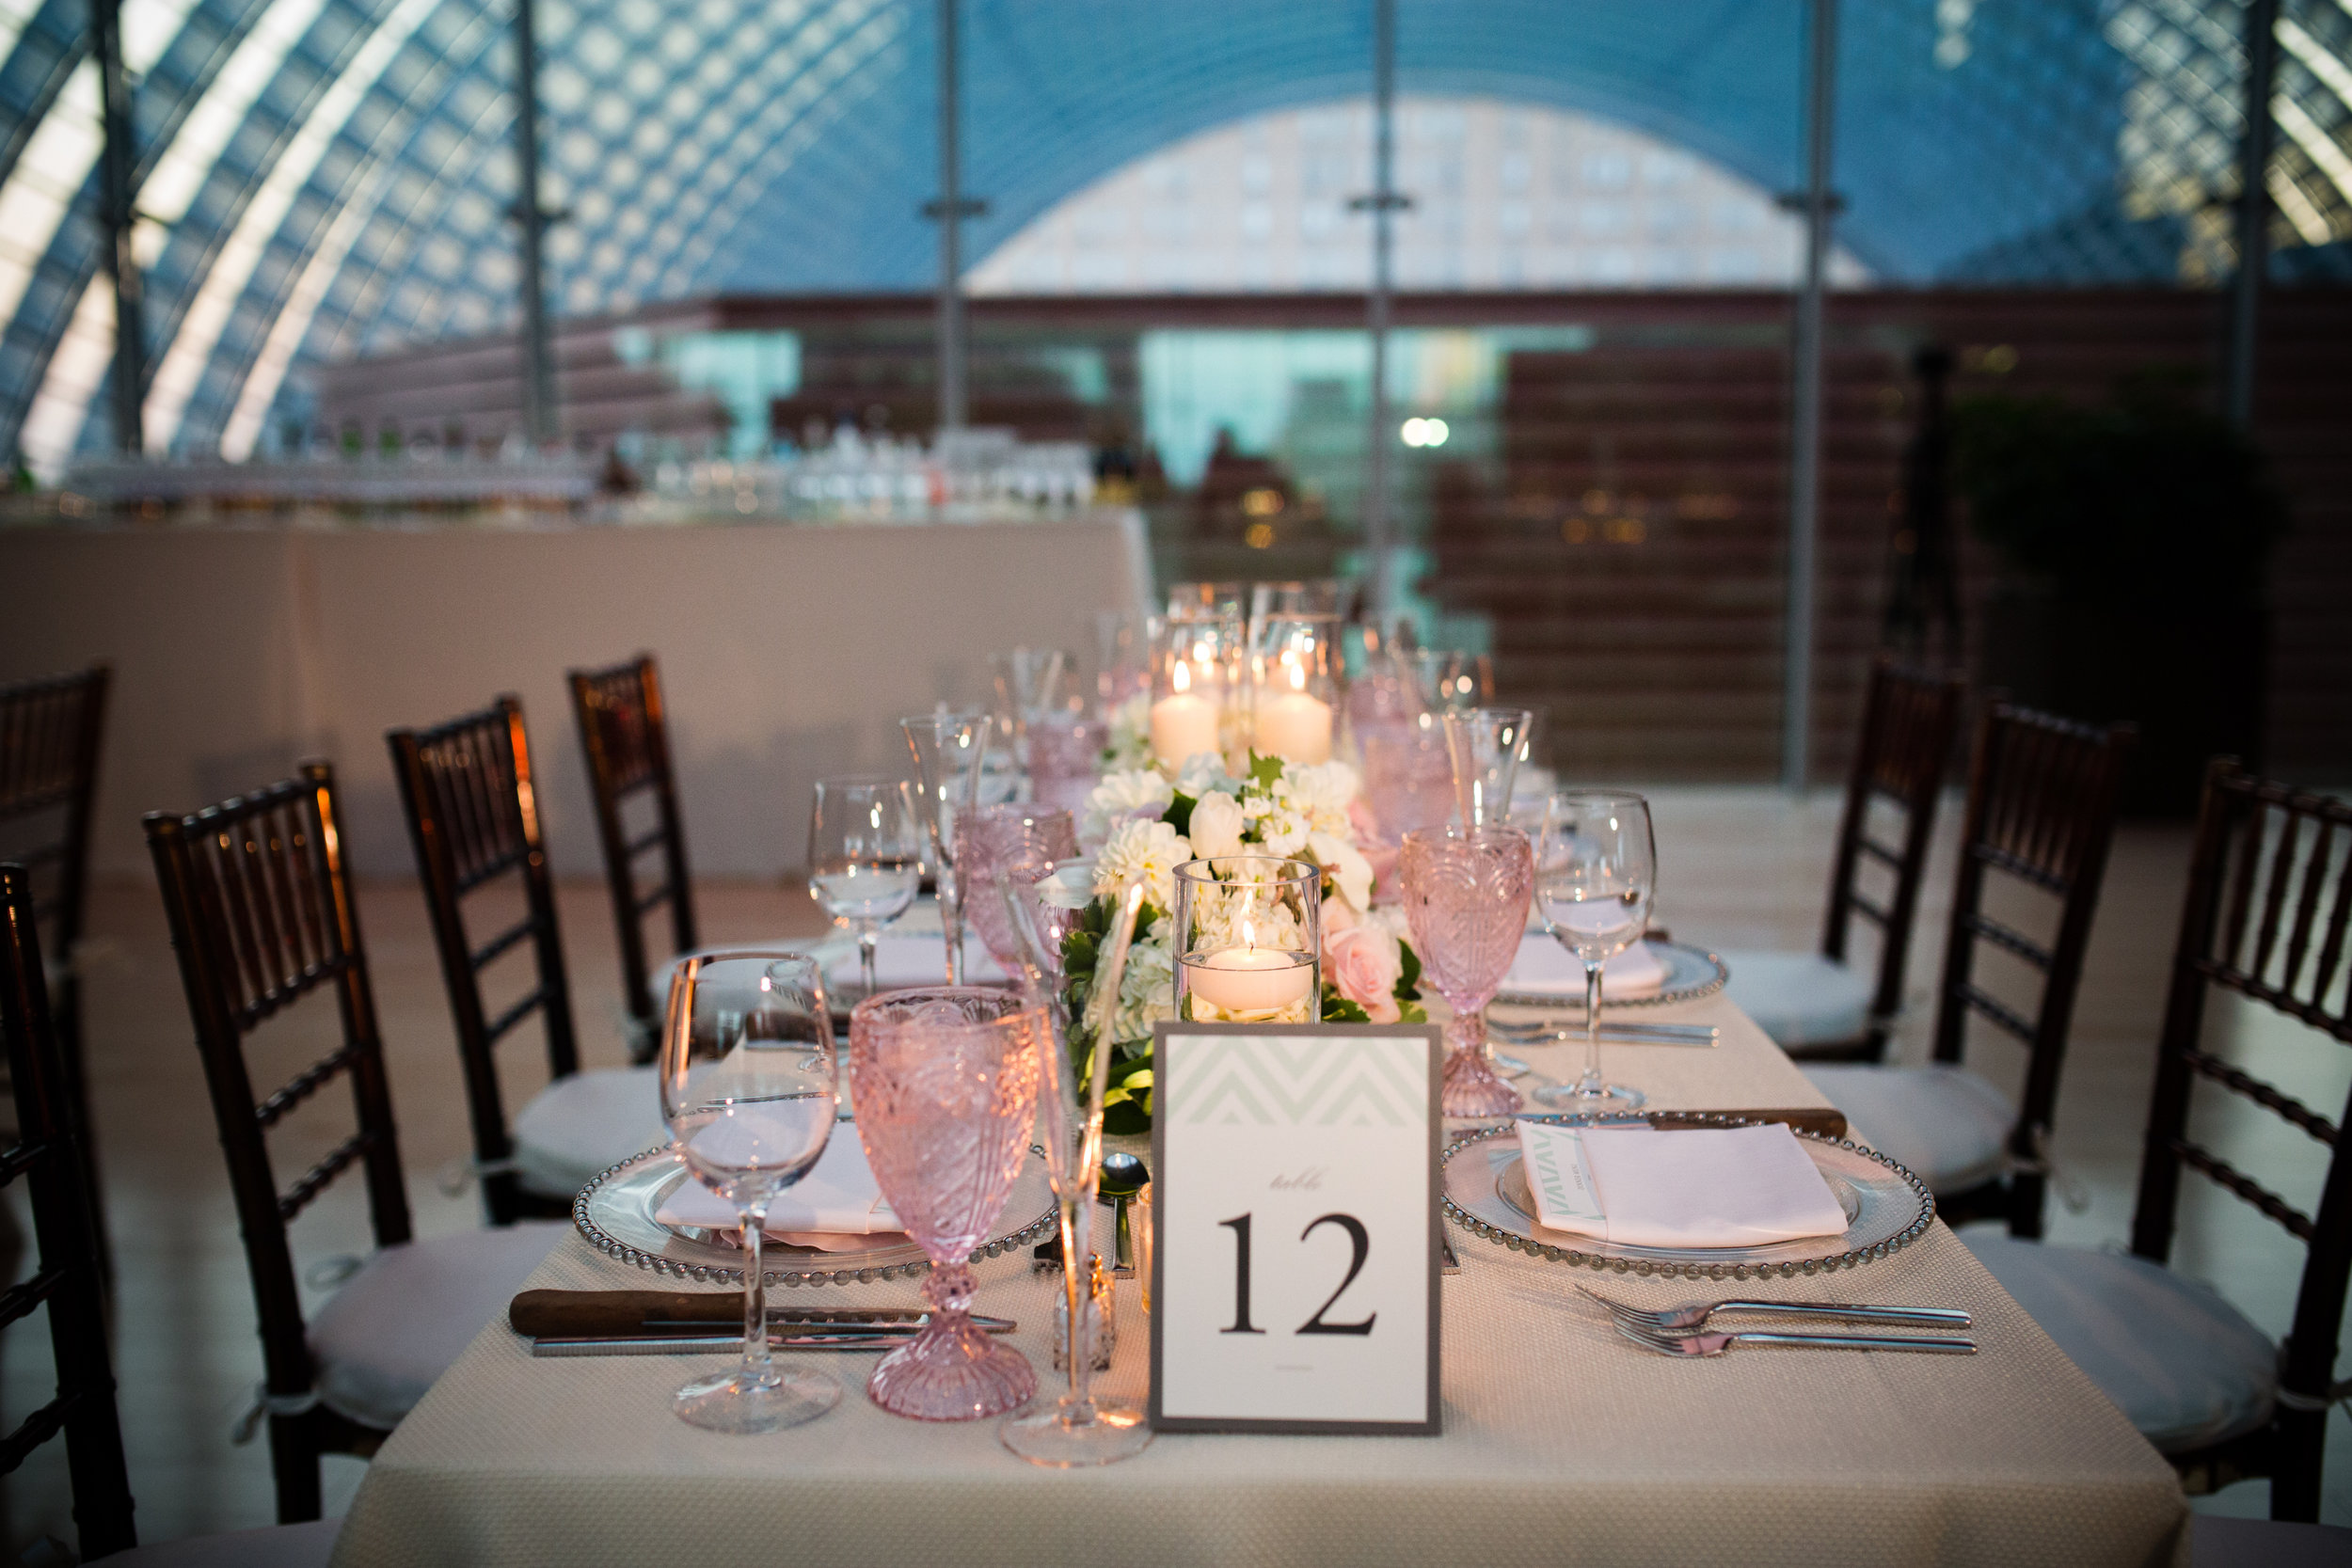 20 Kimmel Center Philadelphia Wedding.jpg